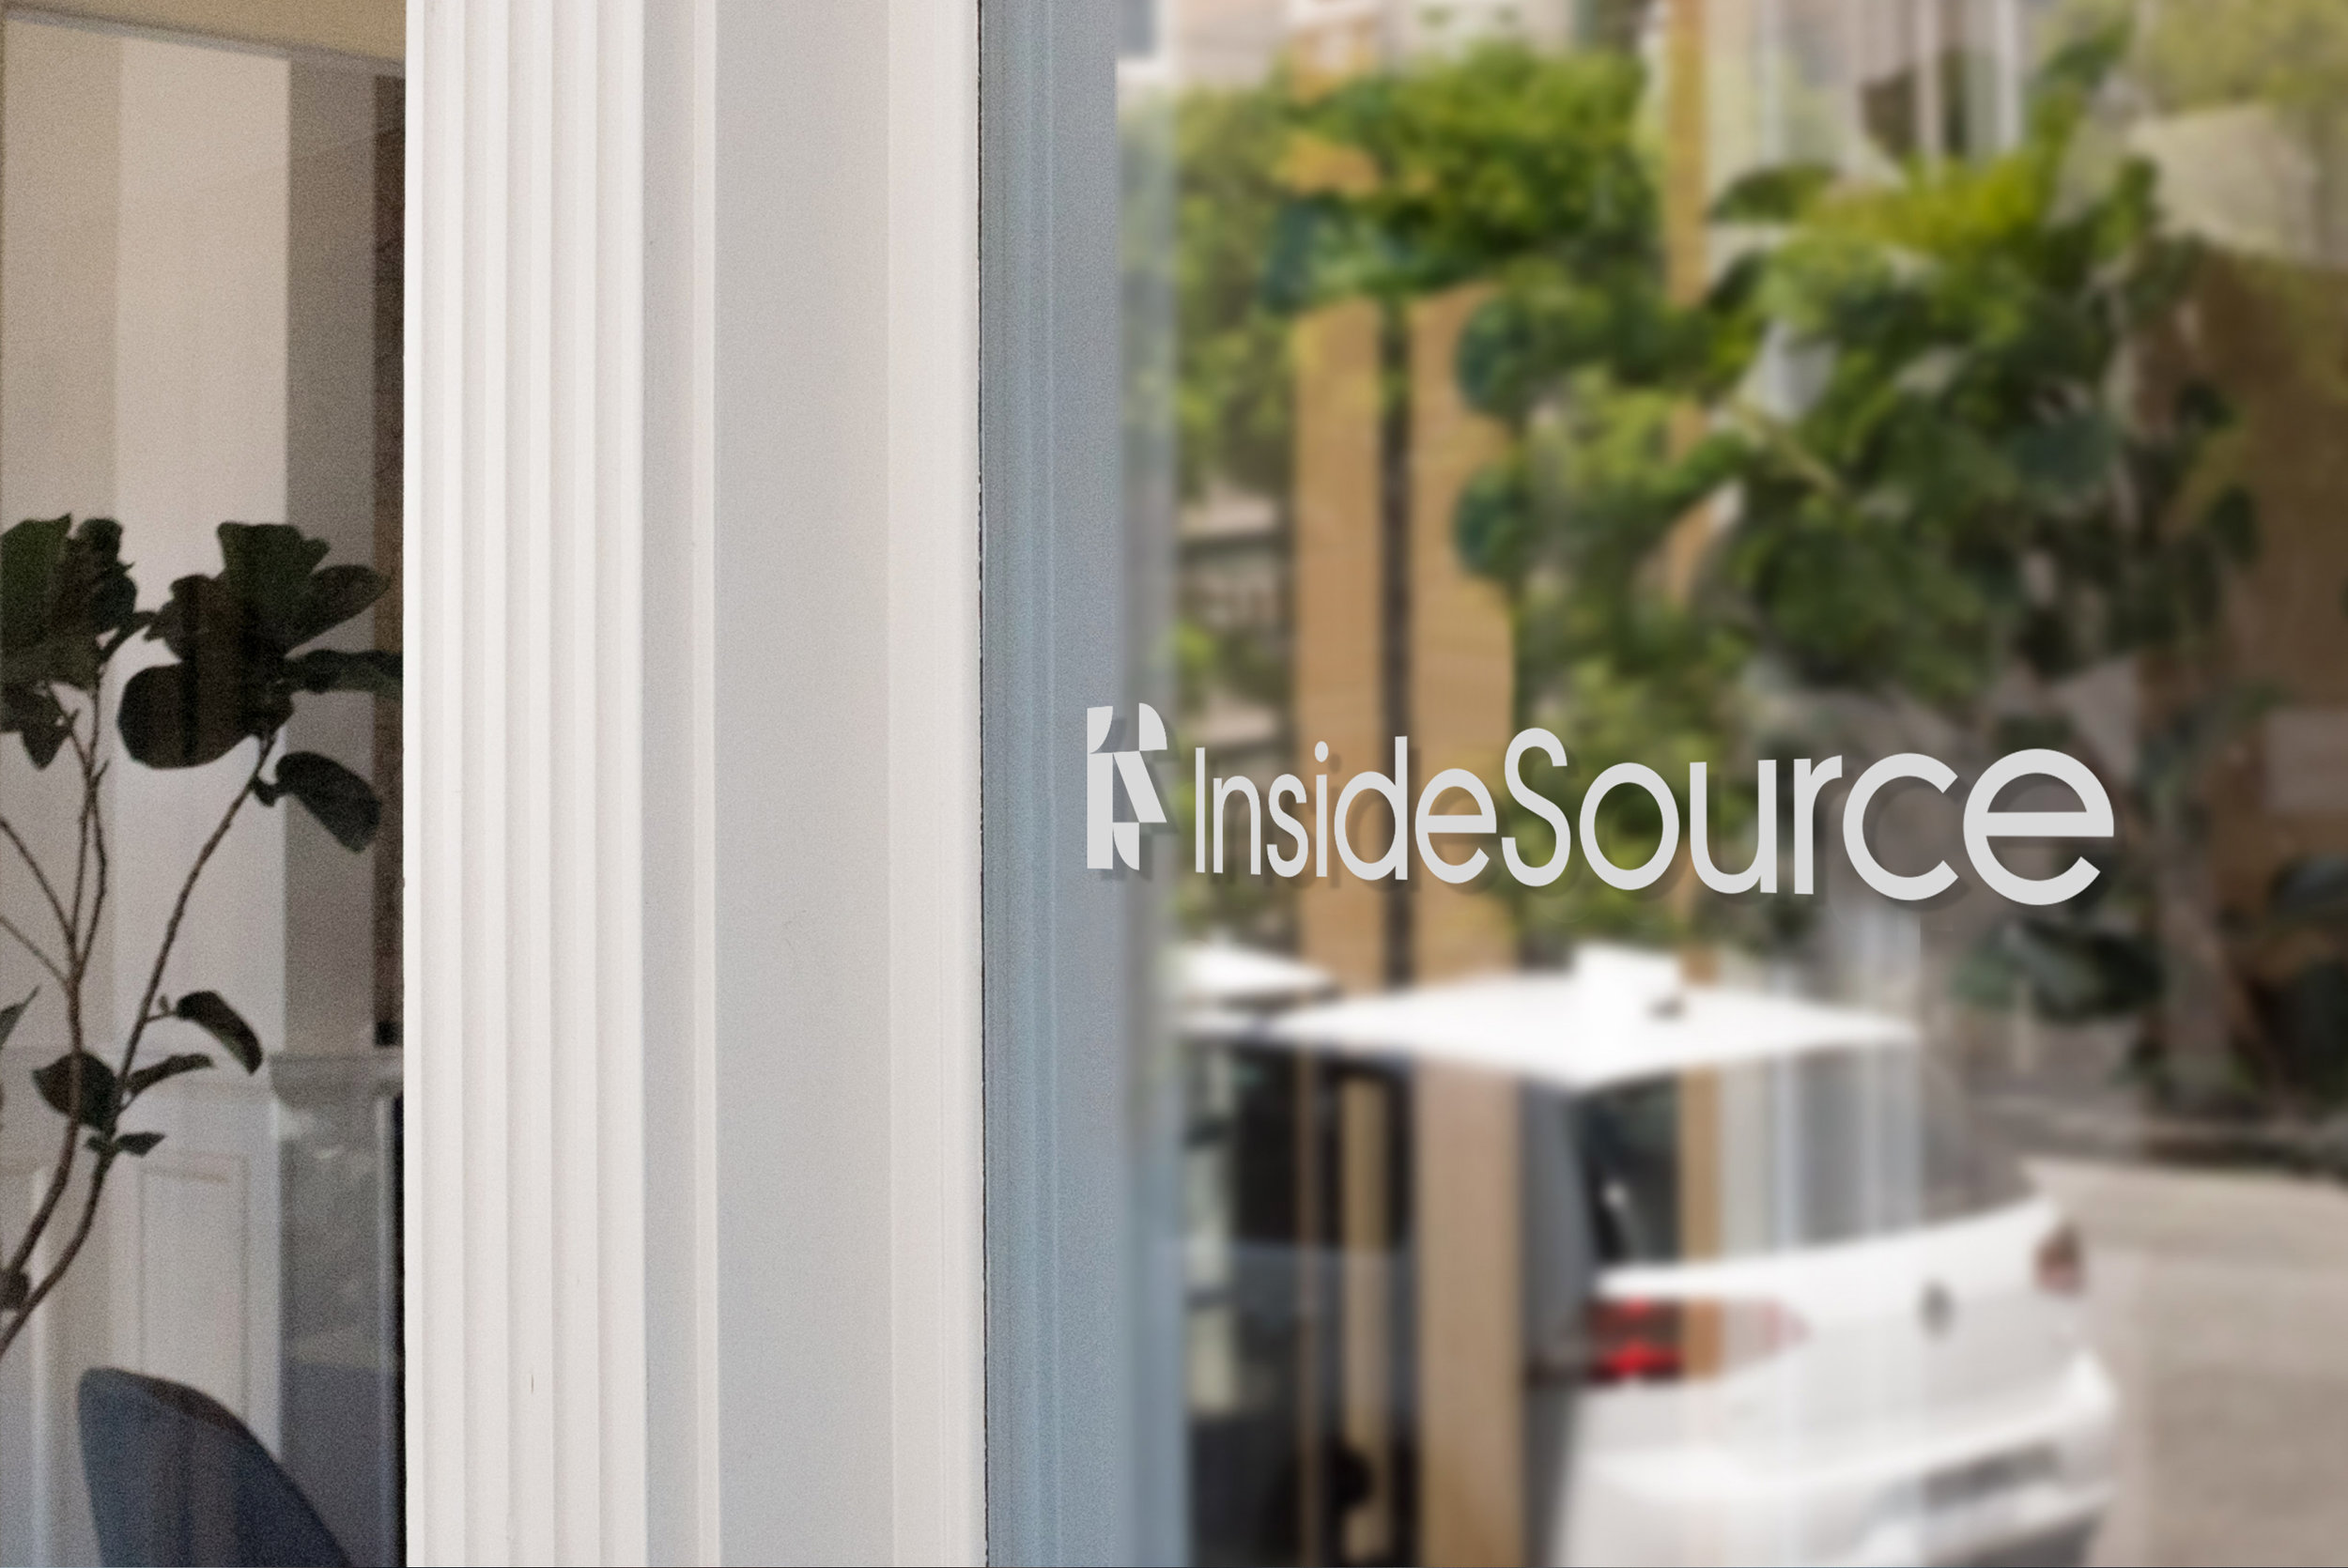 InsideSource_Window_Signage.jpg